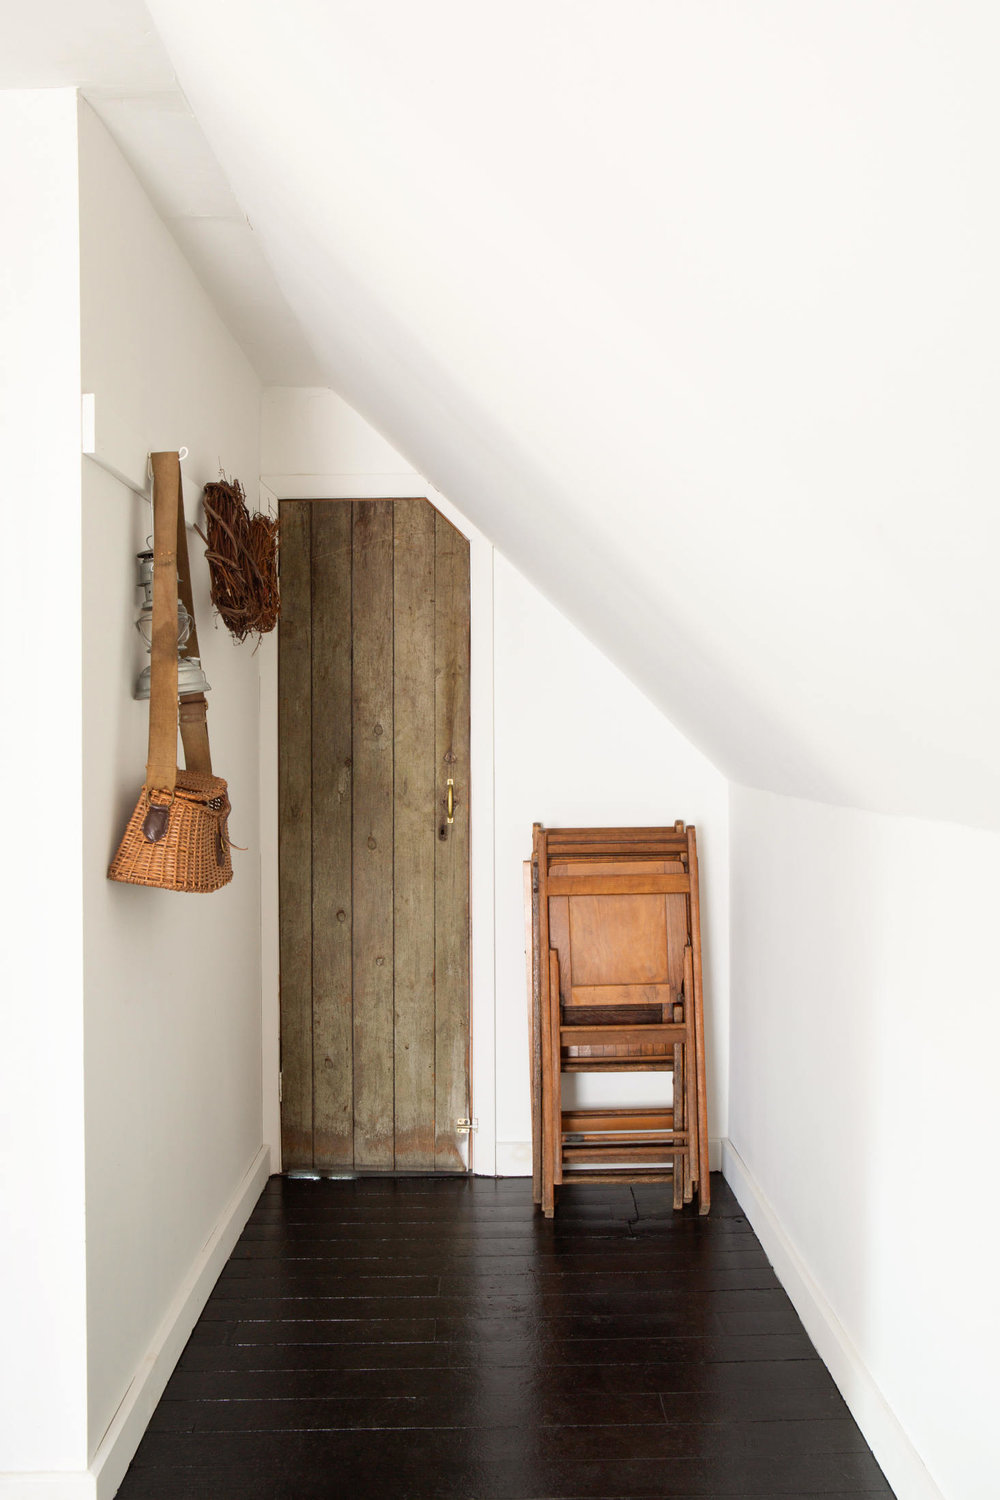 lisa-przystup-attic-doorway-sarah-elliott-1466x2199.jpg